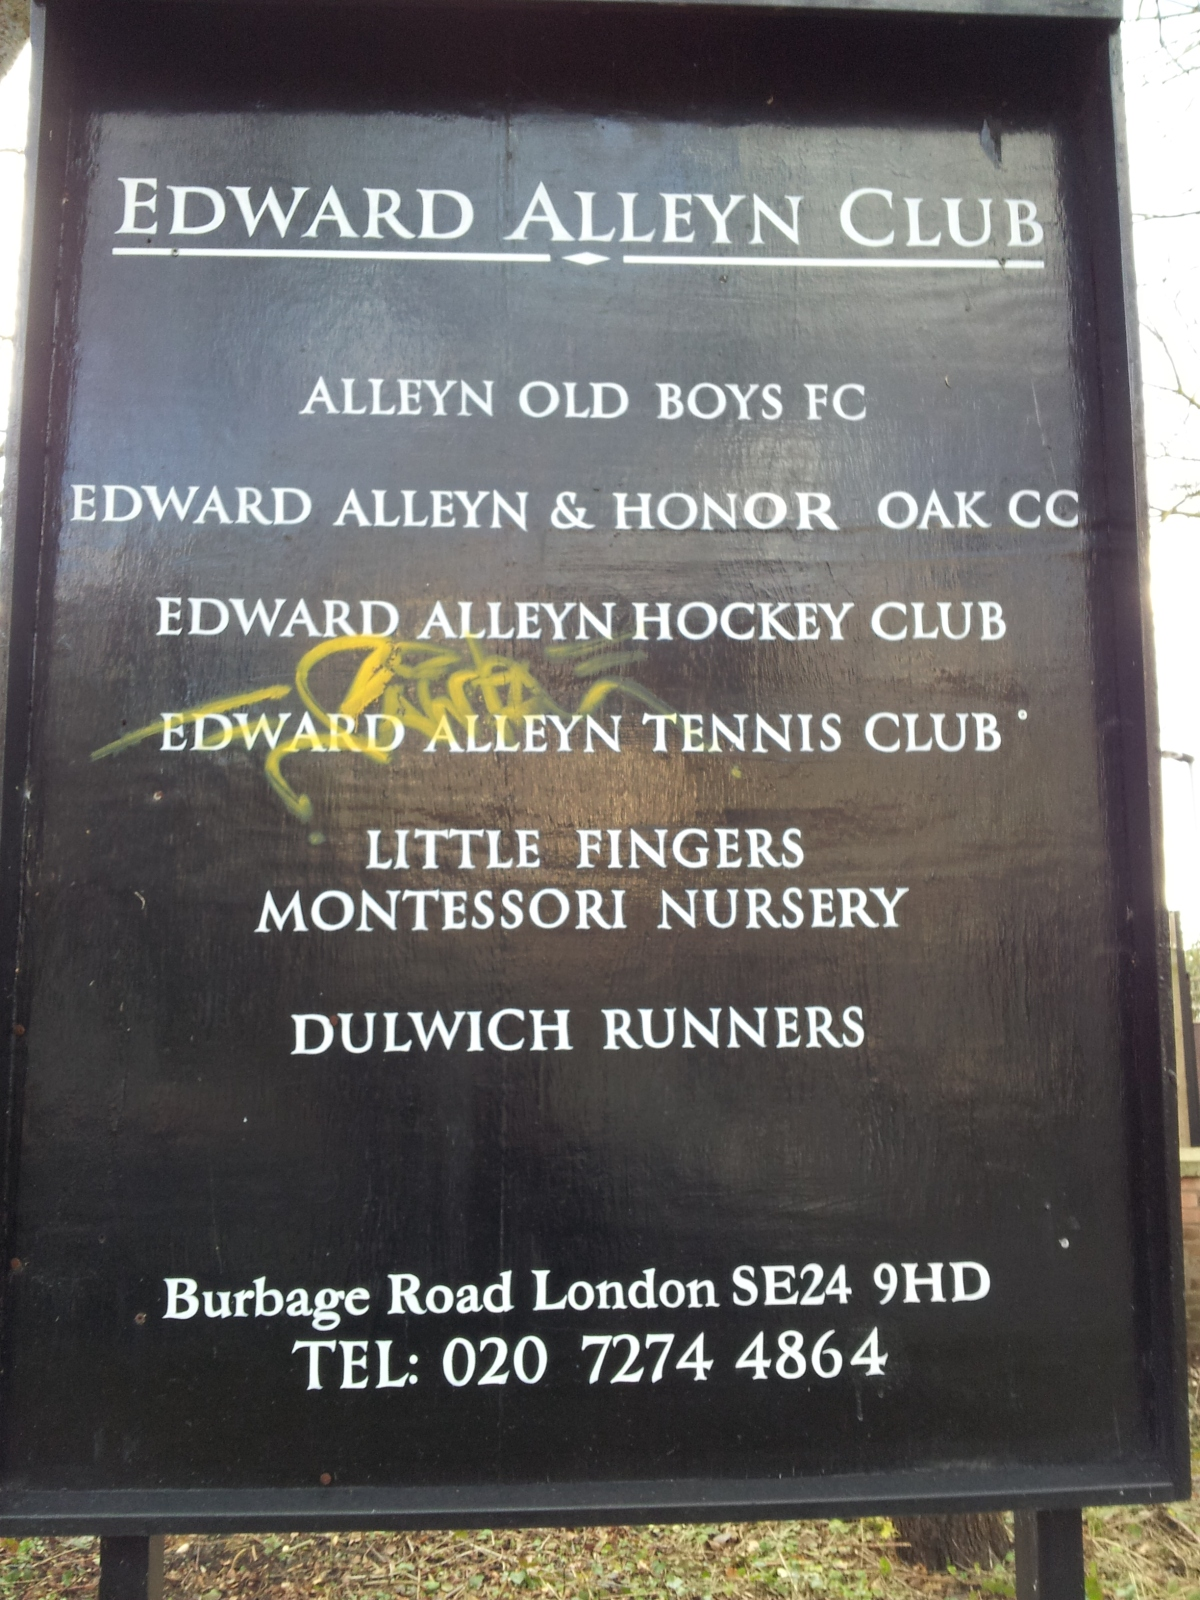 Edward Alleyn Club noticeboard